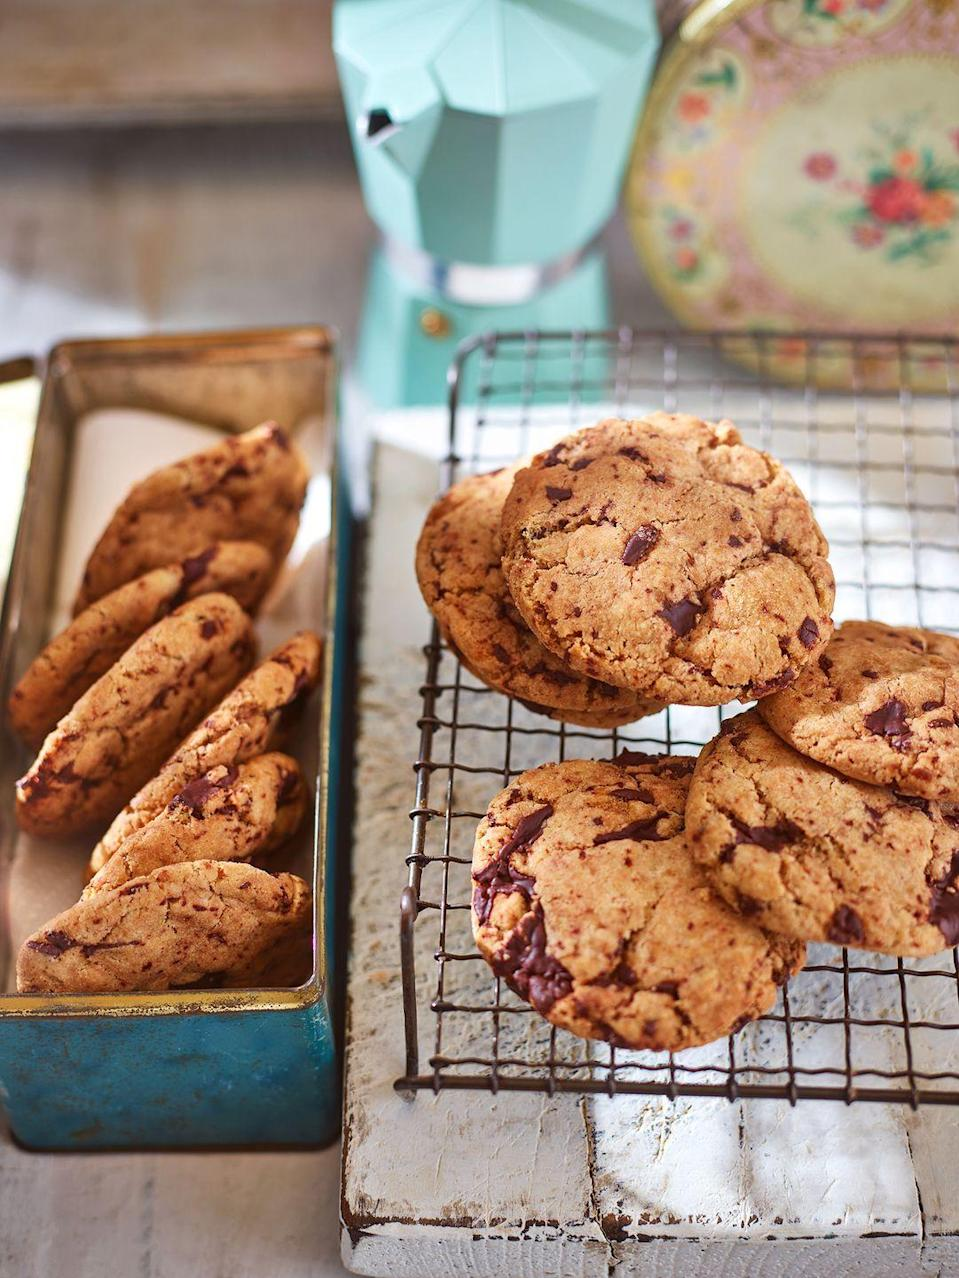 """<p>These vegan chocolate chip cookies are so moreish, even non-vegans will be coming back for a second serving!</p><p><strong>Recipe: <a href=""""https://www.goodhousekeeping.com/uk/food/recipes/a25542611/vegan-cookies/"""" rel=""""nofollow noopener"""" target=""""_blank"""" data-ylk=""""slk:Vegan chocolate chip cookies"""" class=""""link rapid-noclick-resp"""">Vegan chocolate chip cookies</a></strong></p>"""